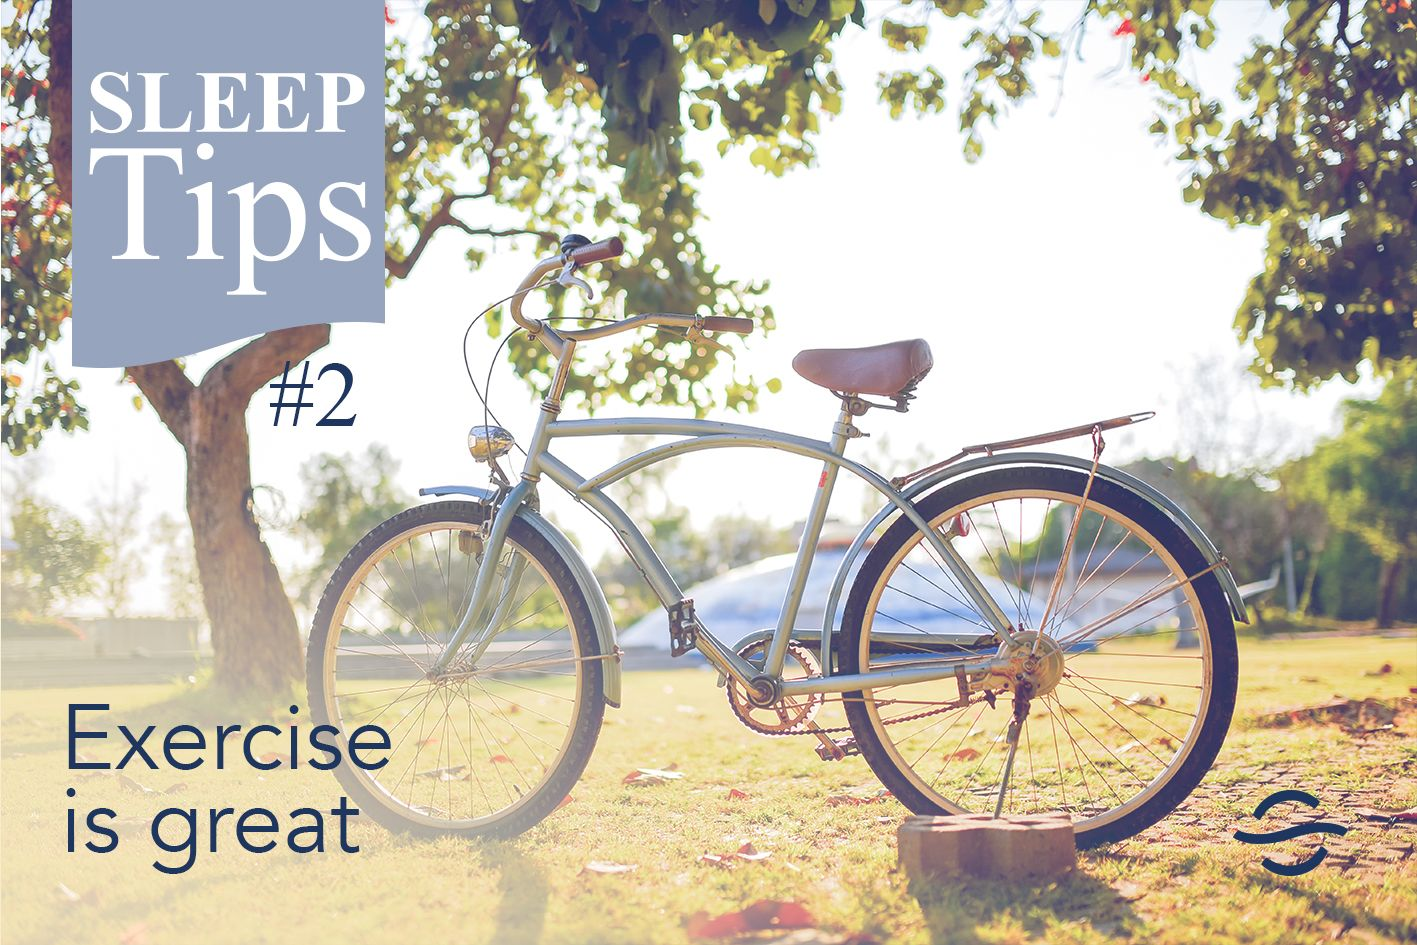 Sleeptip Exercise Is Great For Falling Asleep, So Long As It's Not Too Late  In The Day Try To Exercise At Least 30 Minutes On Most Days